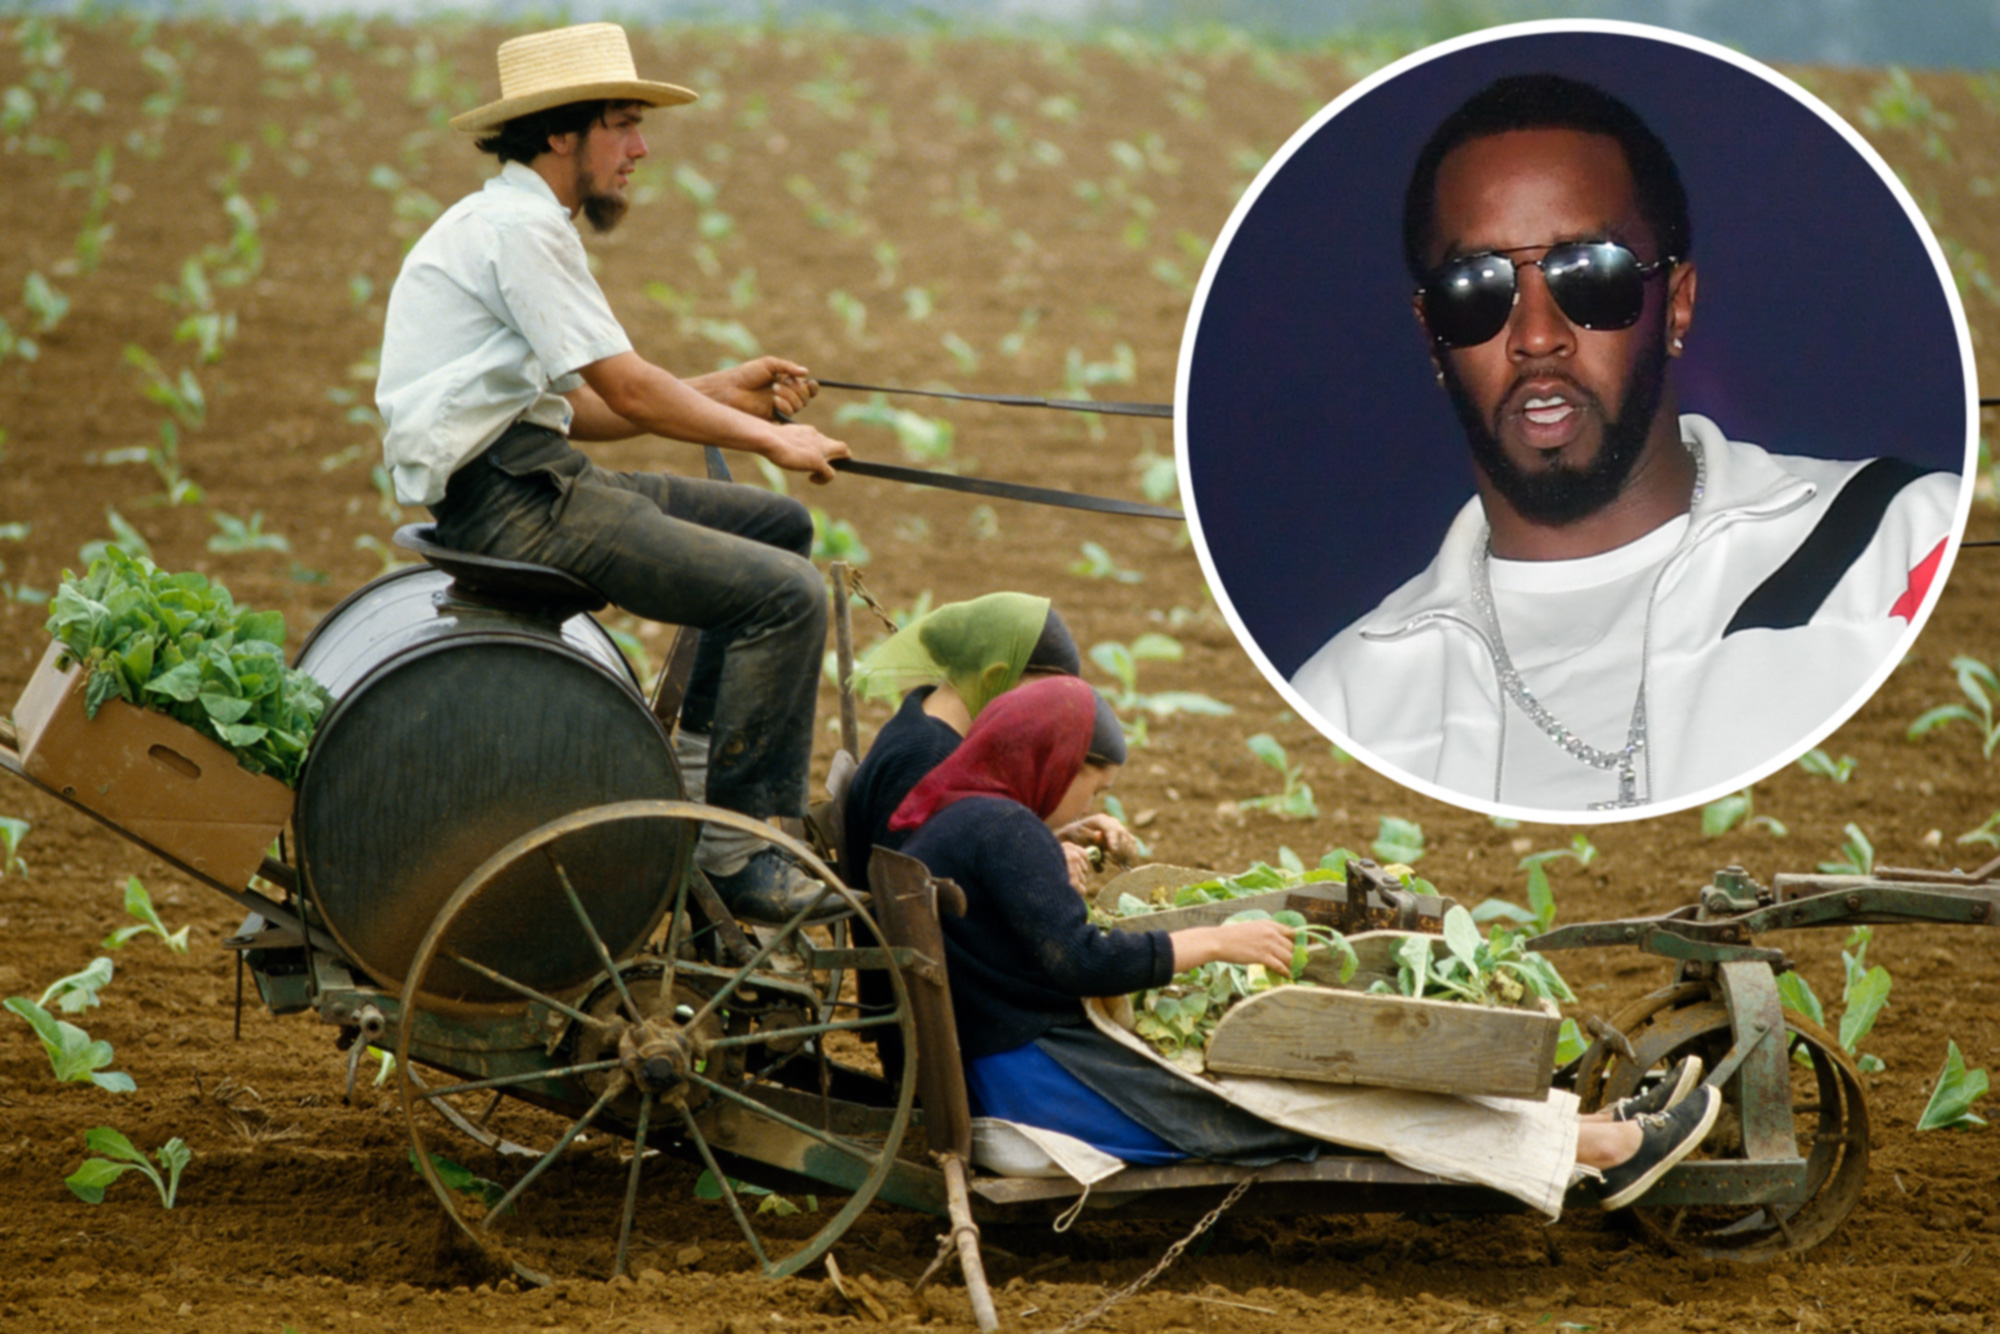 Sean Combs once spent a 'life-changing' summer with the Amish